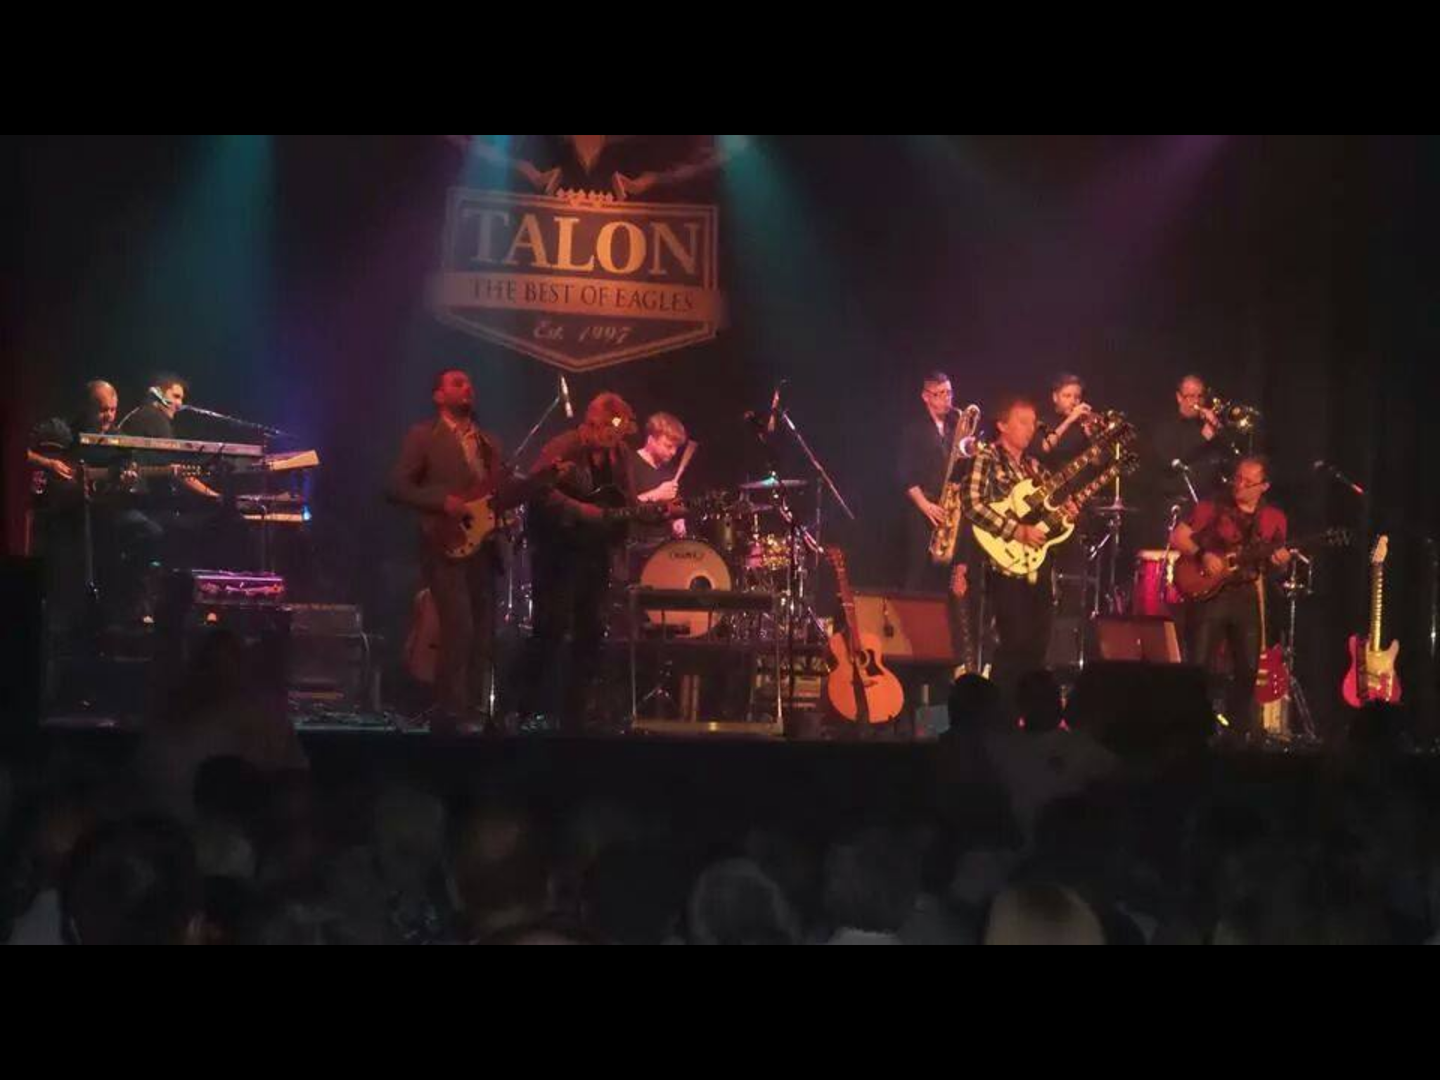 On tour with Talon - Best of the Eagles